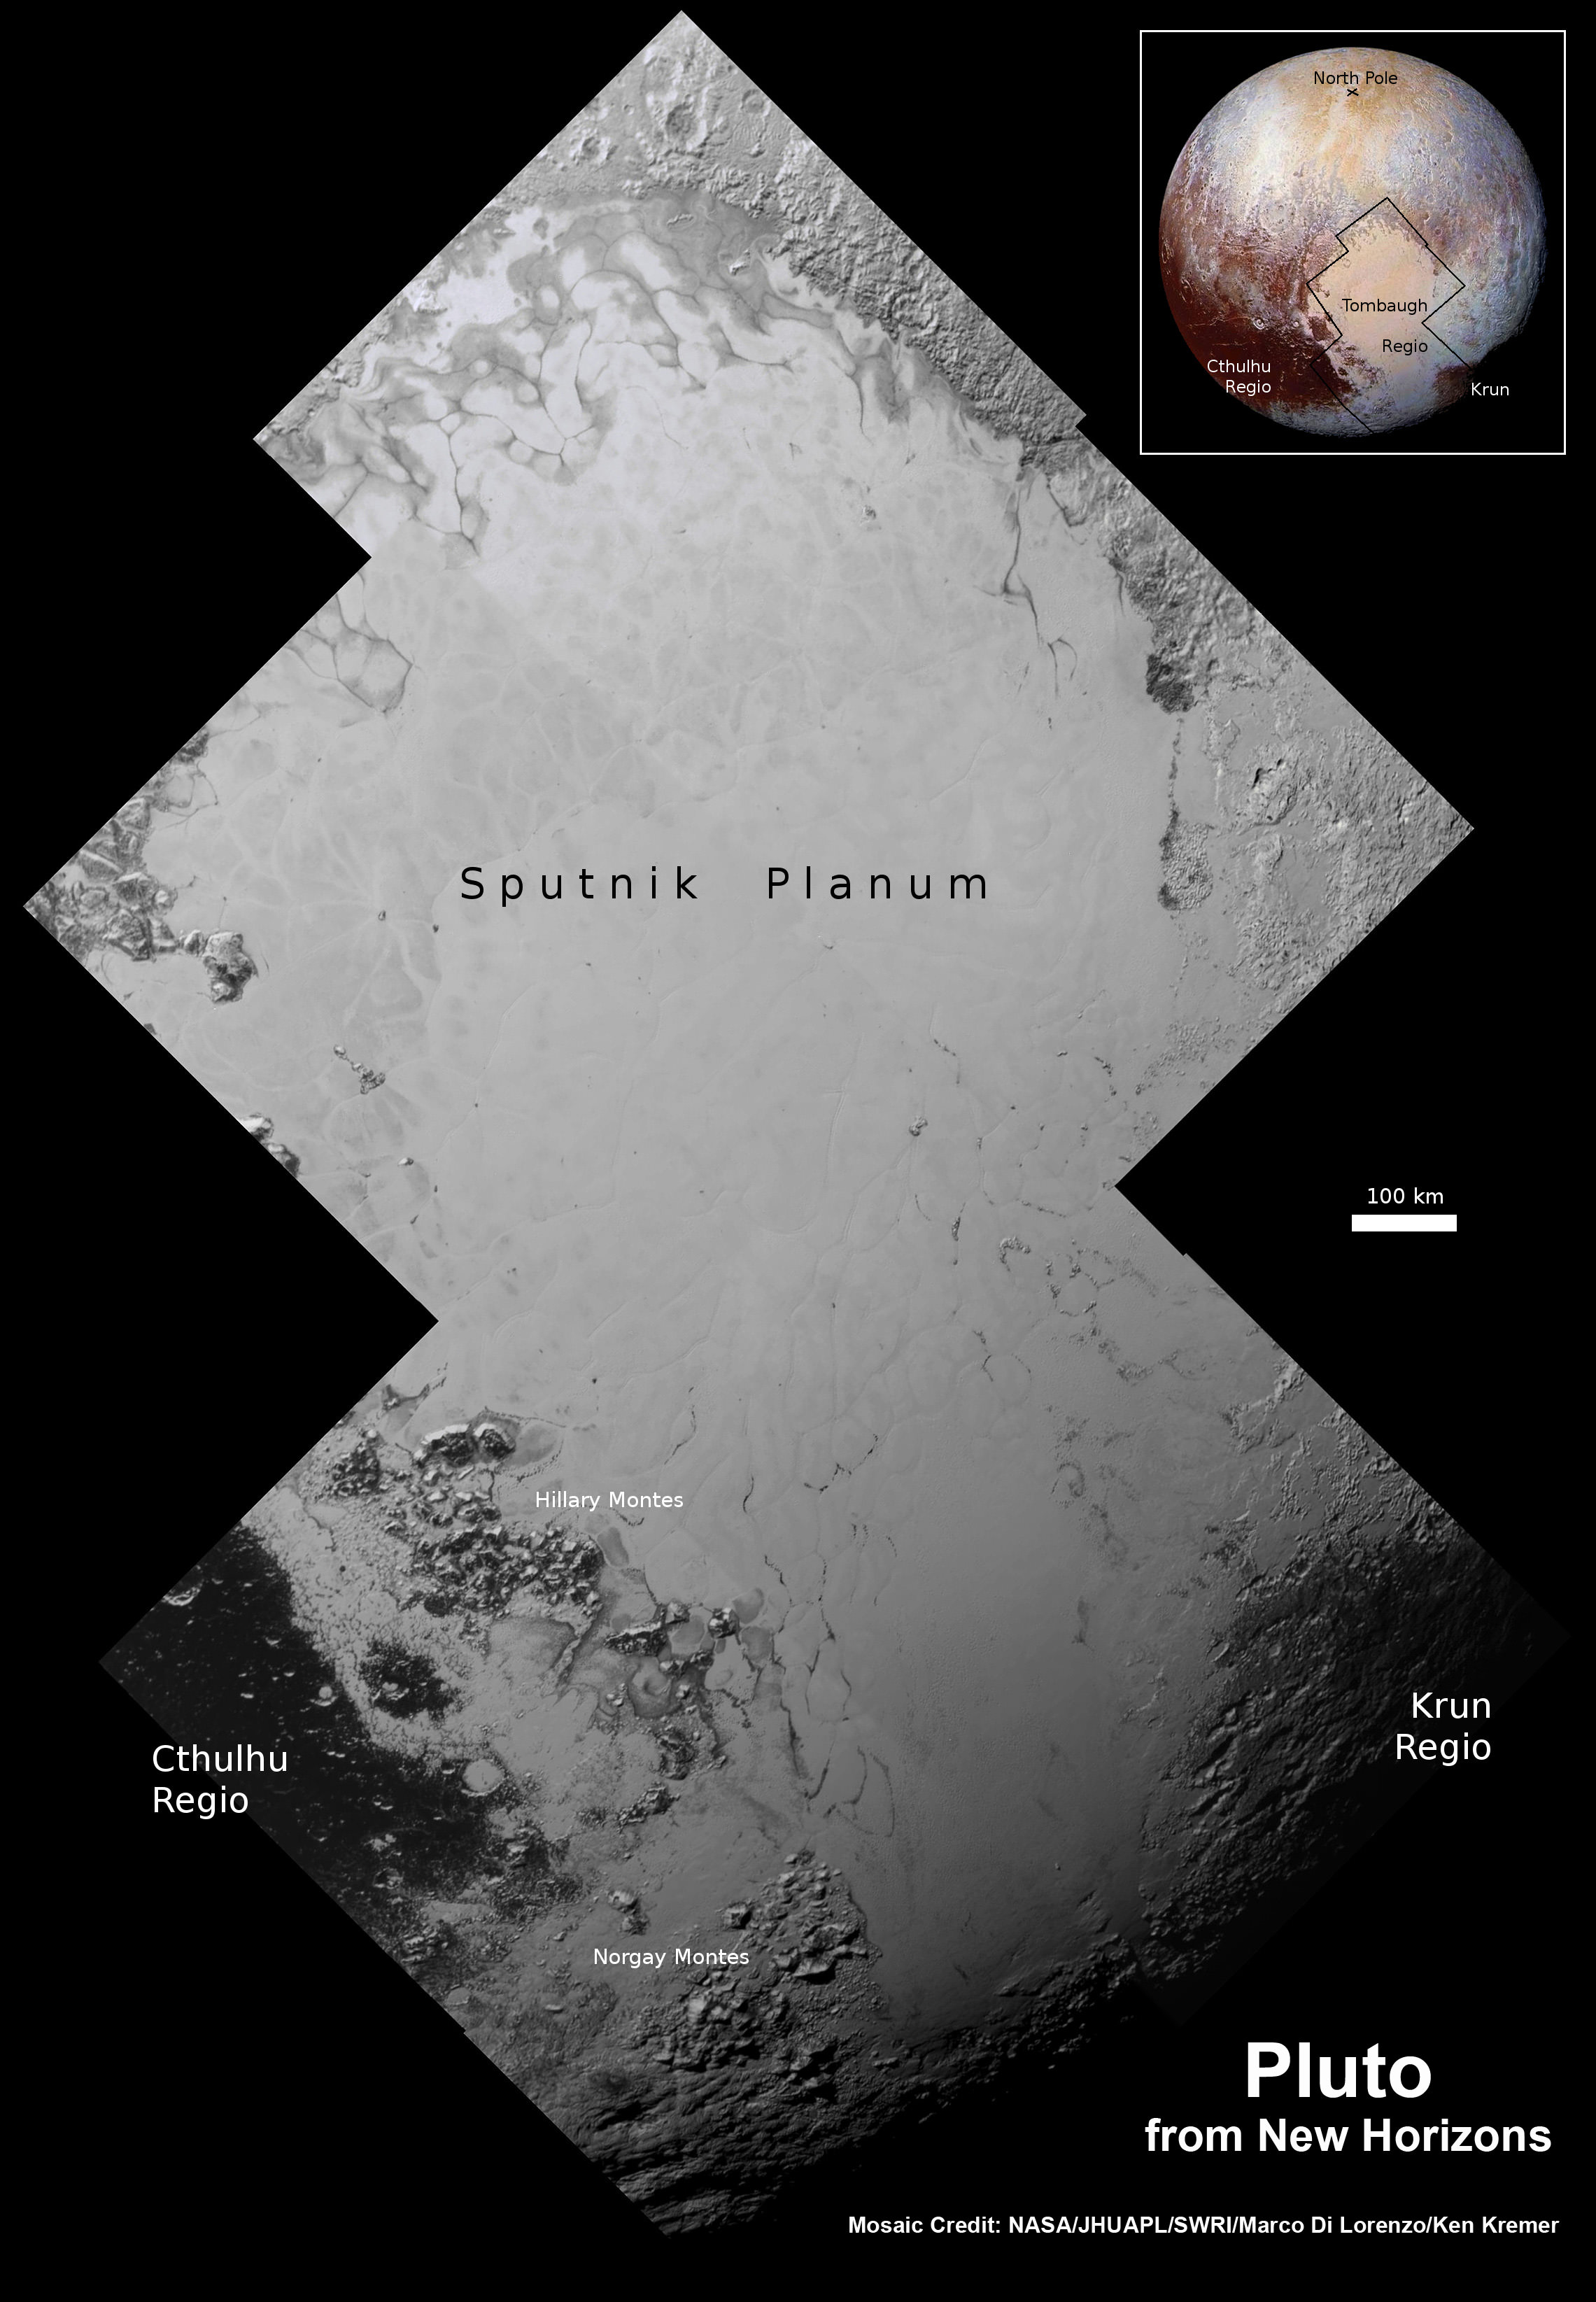 Highest resolution mosaic of 'Tombaugh Regio' shows the heart-shaped region on Pluto focusing on ice flows and plains of 'Sputnik Planum' at top and icy mountain ranges of 'Hillary Montes' and 'Norgay Montes' below.  This new mosaic combines the seven highest resolution images captured by NASA's New Horizons LORRI imager during history making closest approach flyby on July 14, 2015.  Inset at right shows global view of Pluto with location of mosaic and huge heart-shaped region in context.  Annotated with place names.  Credit: NASA/JHUAPL/SWRI/ Marco Di Lorenzo/Ken Kremer/kenkremer.com